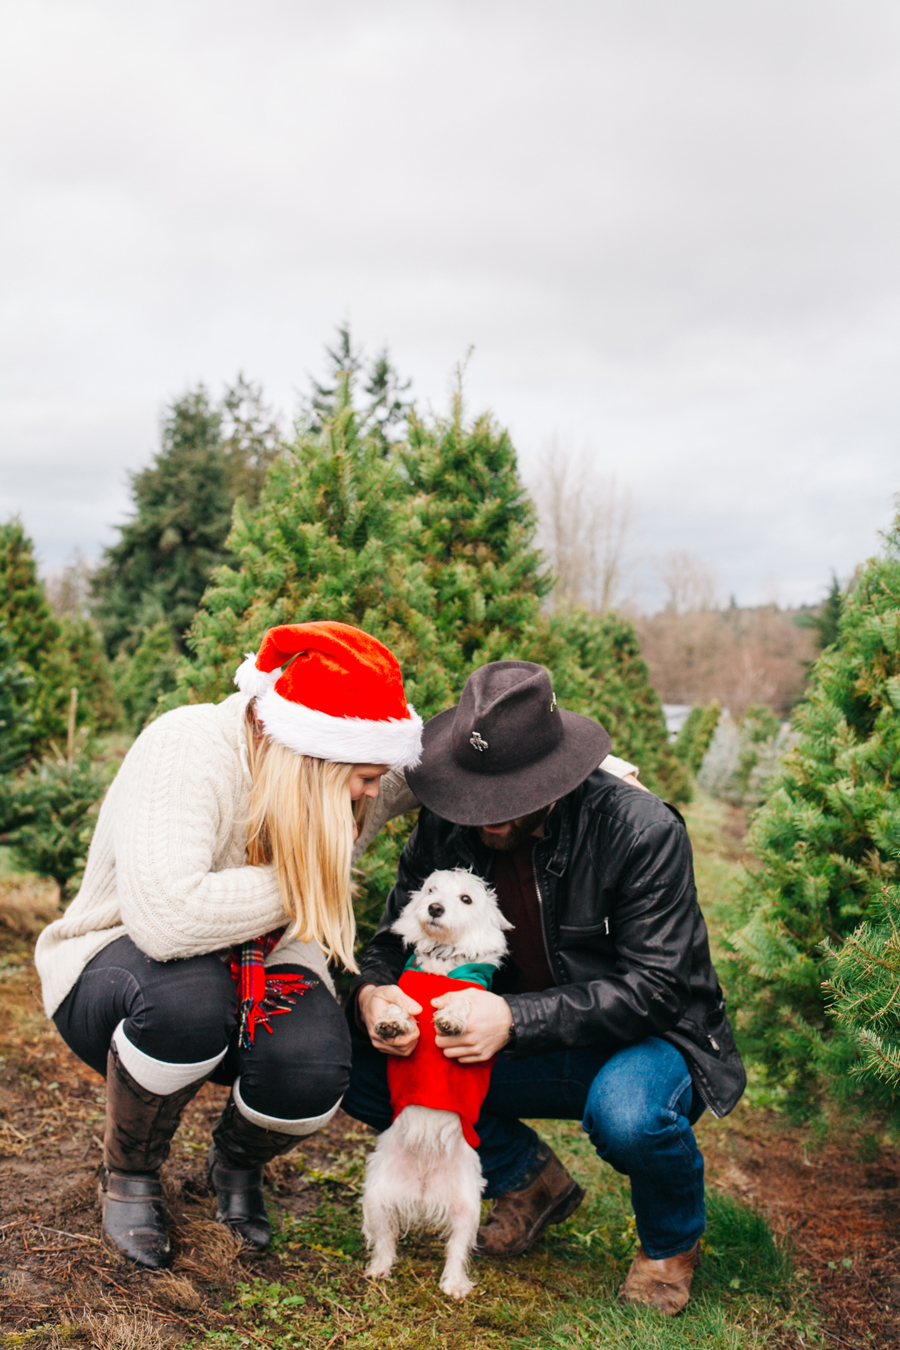 012-fullner-family-christmas-tree-farm-everson-washington-bellingham-family-photographer-katheryn-moran-photography.jpg